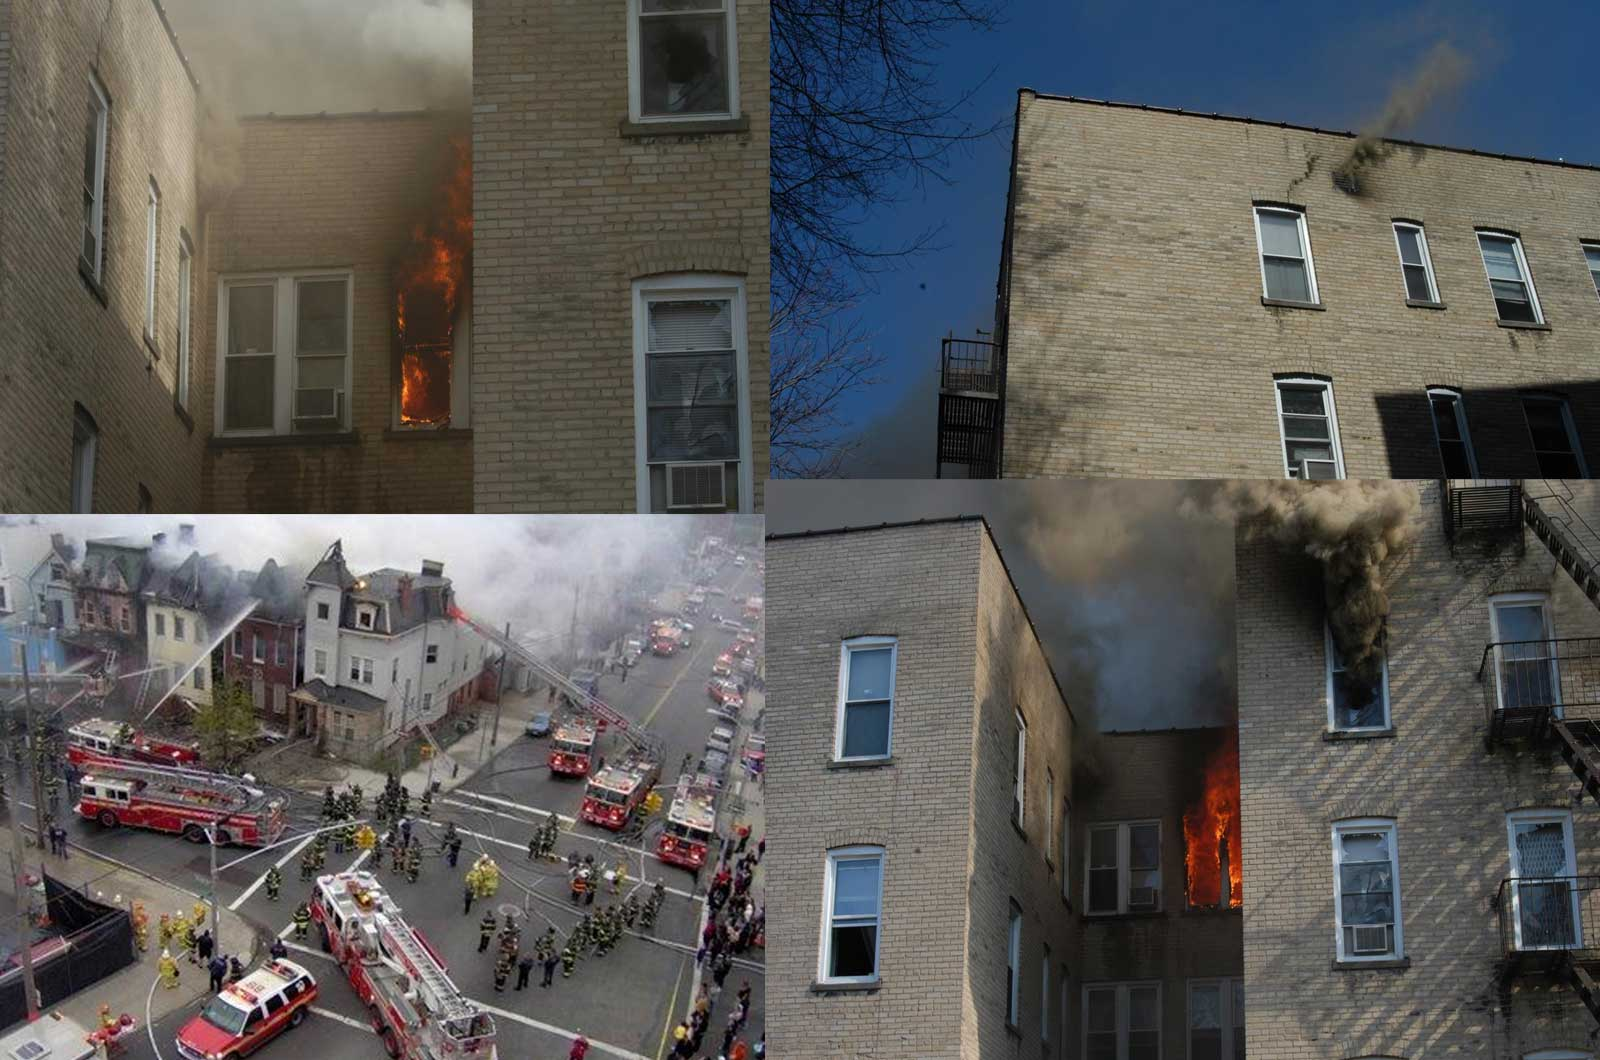 Different views of a fire building and fireground, including fire apparatus array